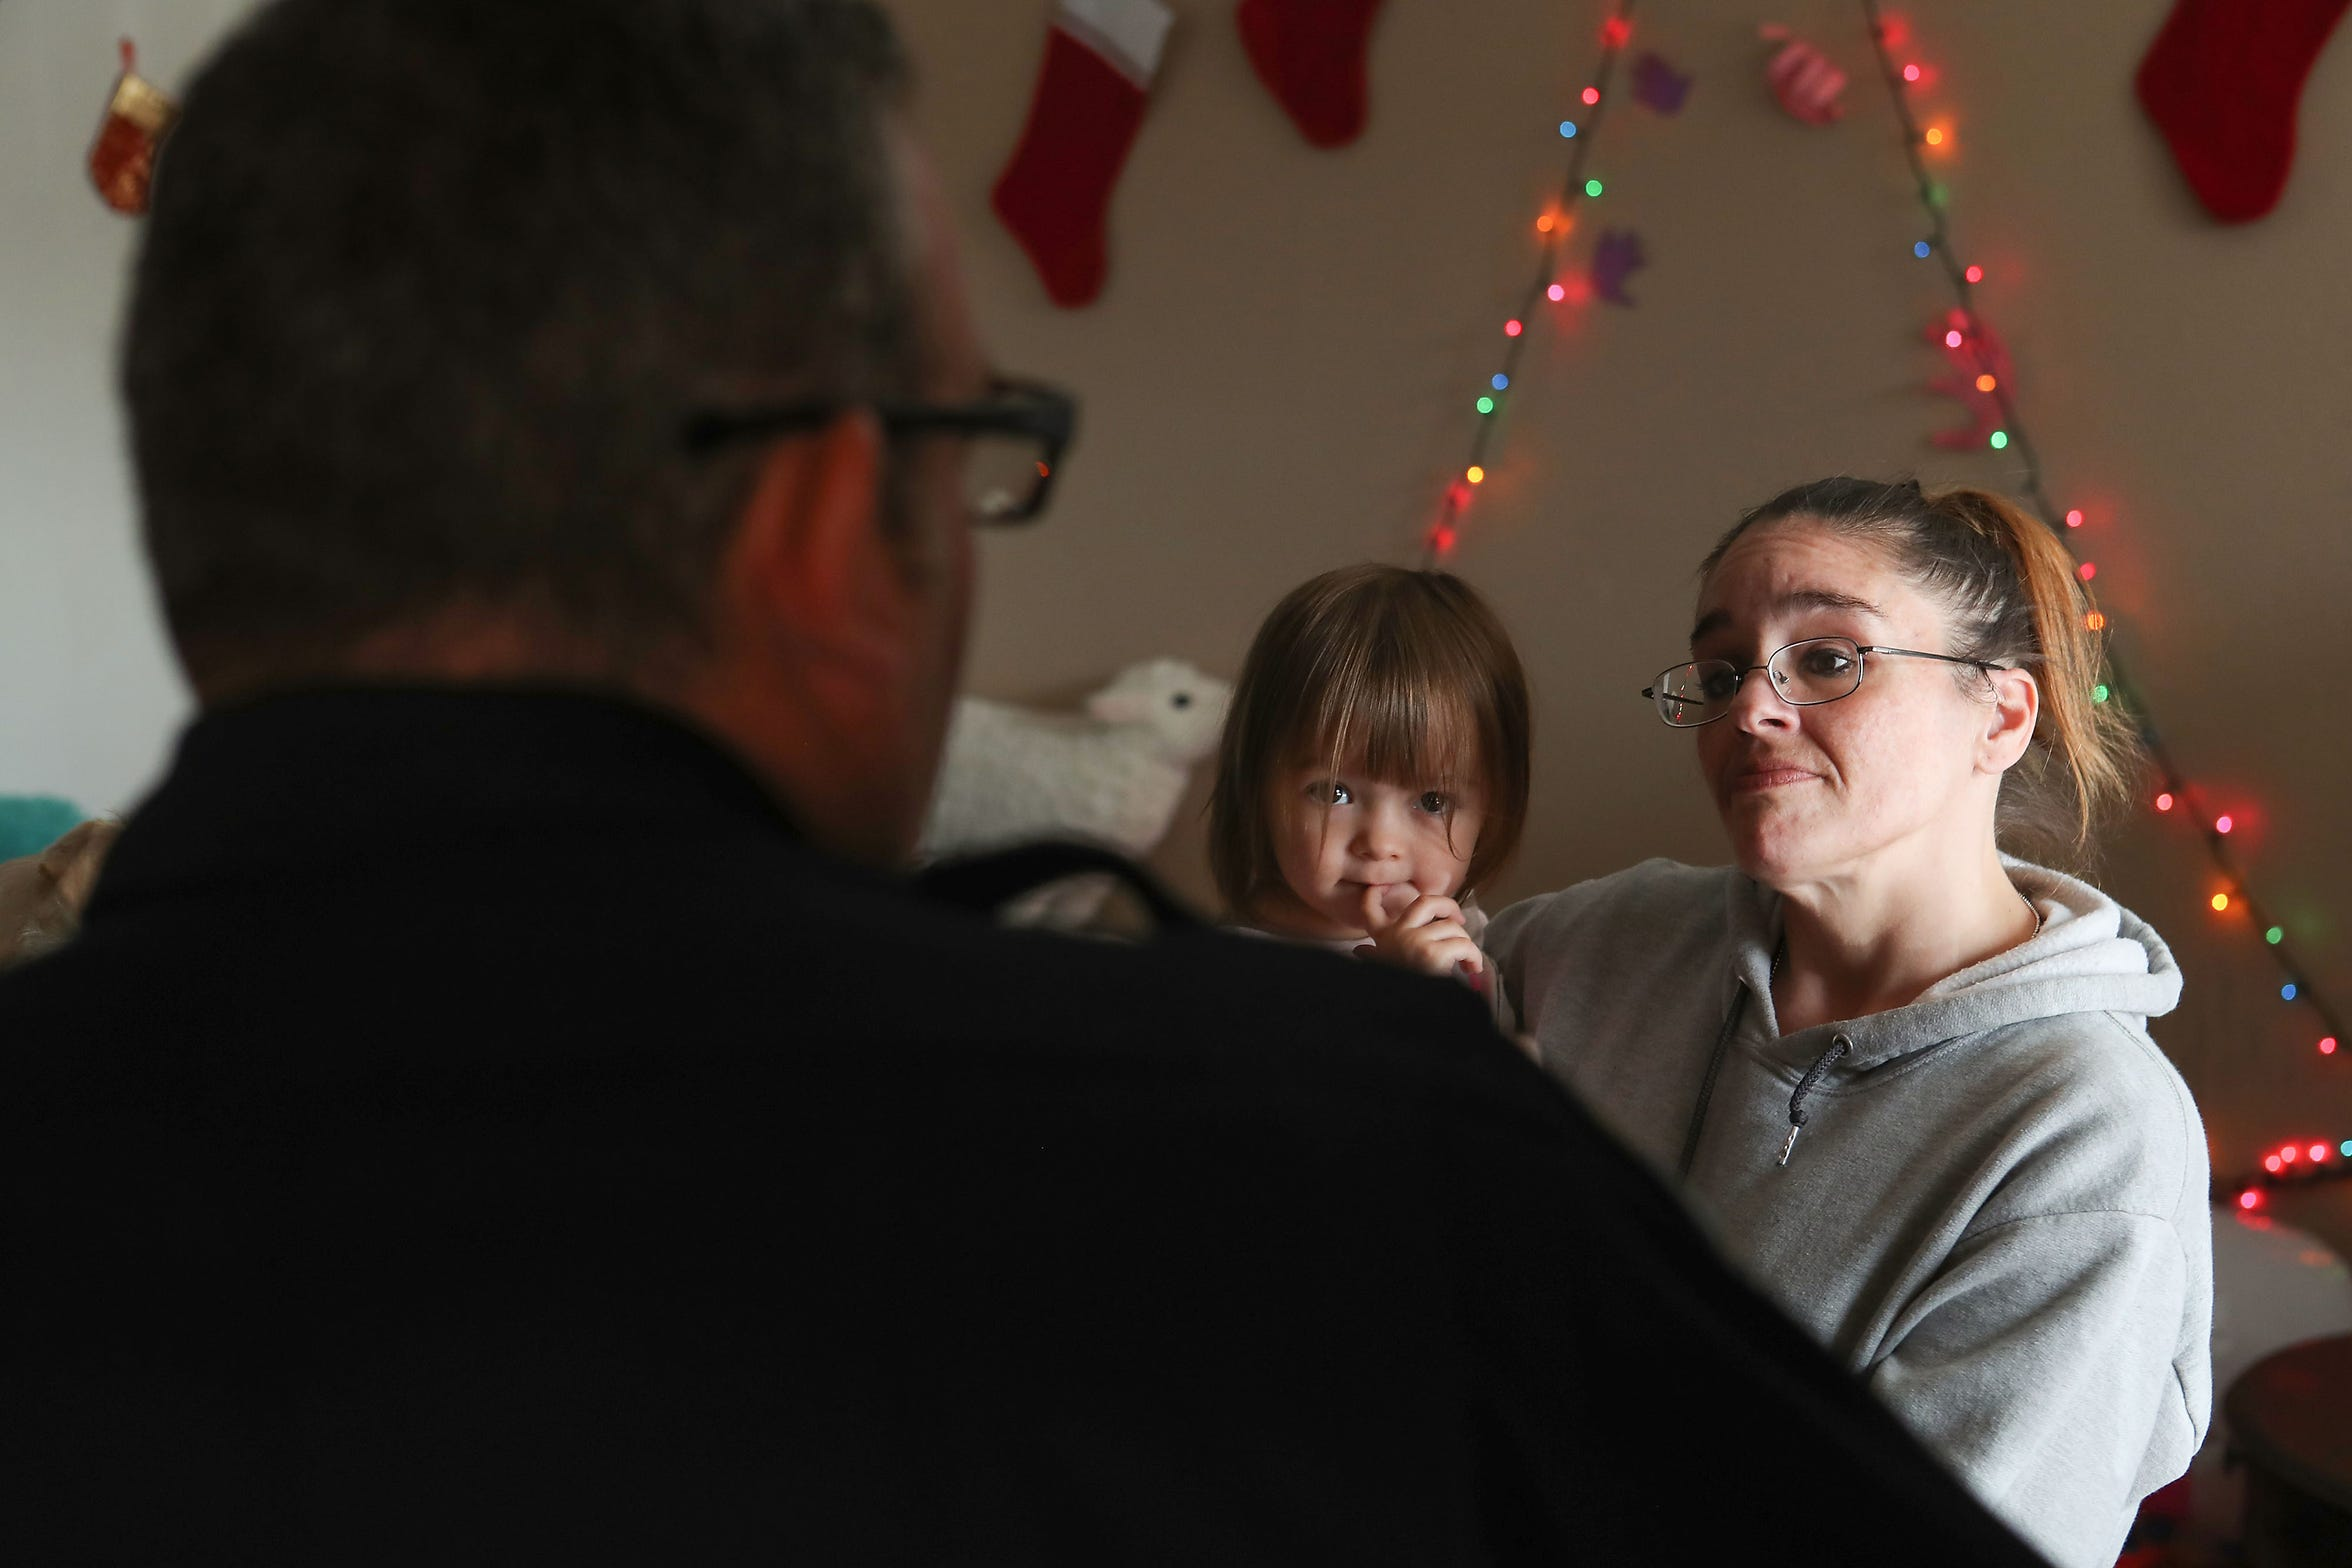 Erica Murphy holds her daughter Johanna in their apartment while being visited by Indio Police Officer Brandon Haworth.  Murphy spent seven years living homeless before getting back on her feet with some help from Haworth, December 18, 2019.